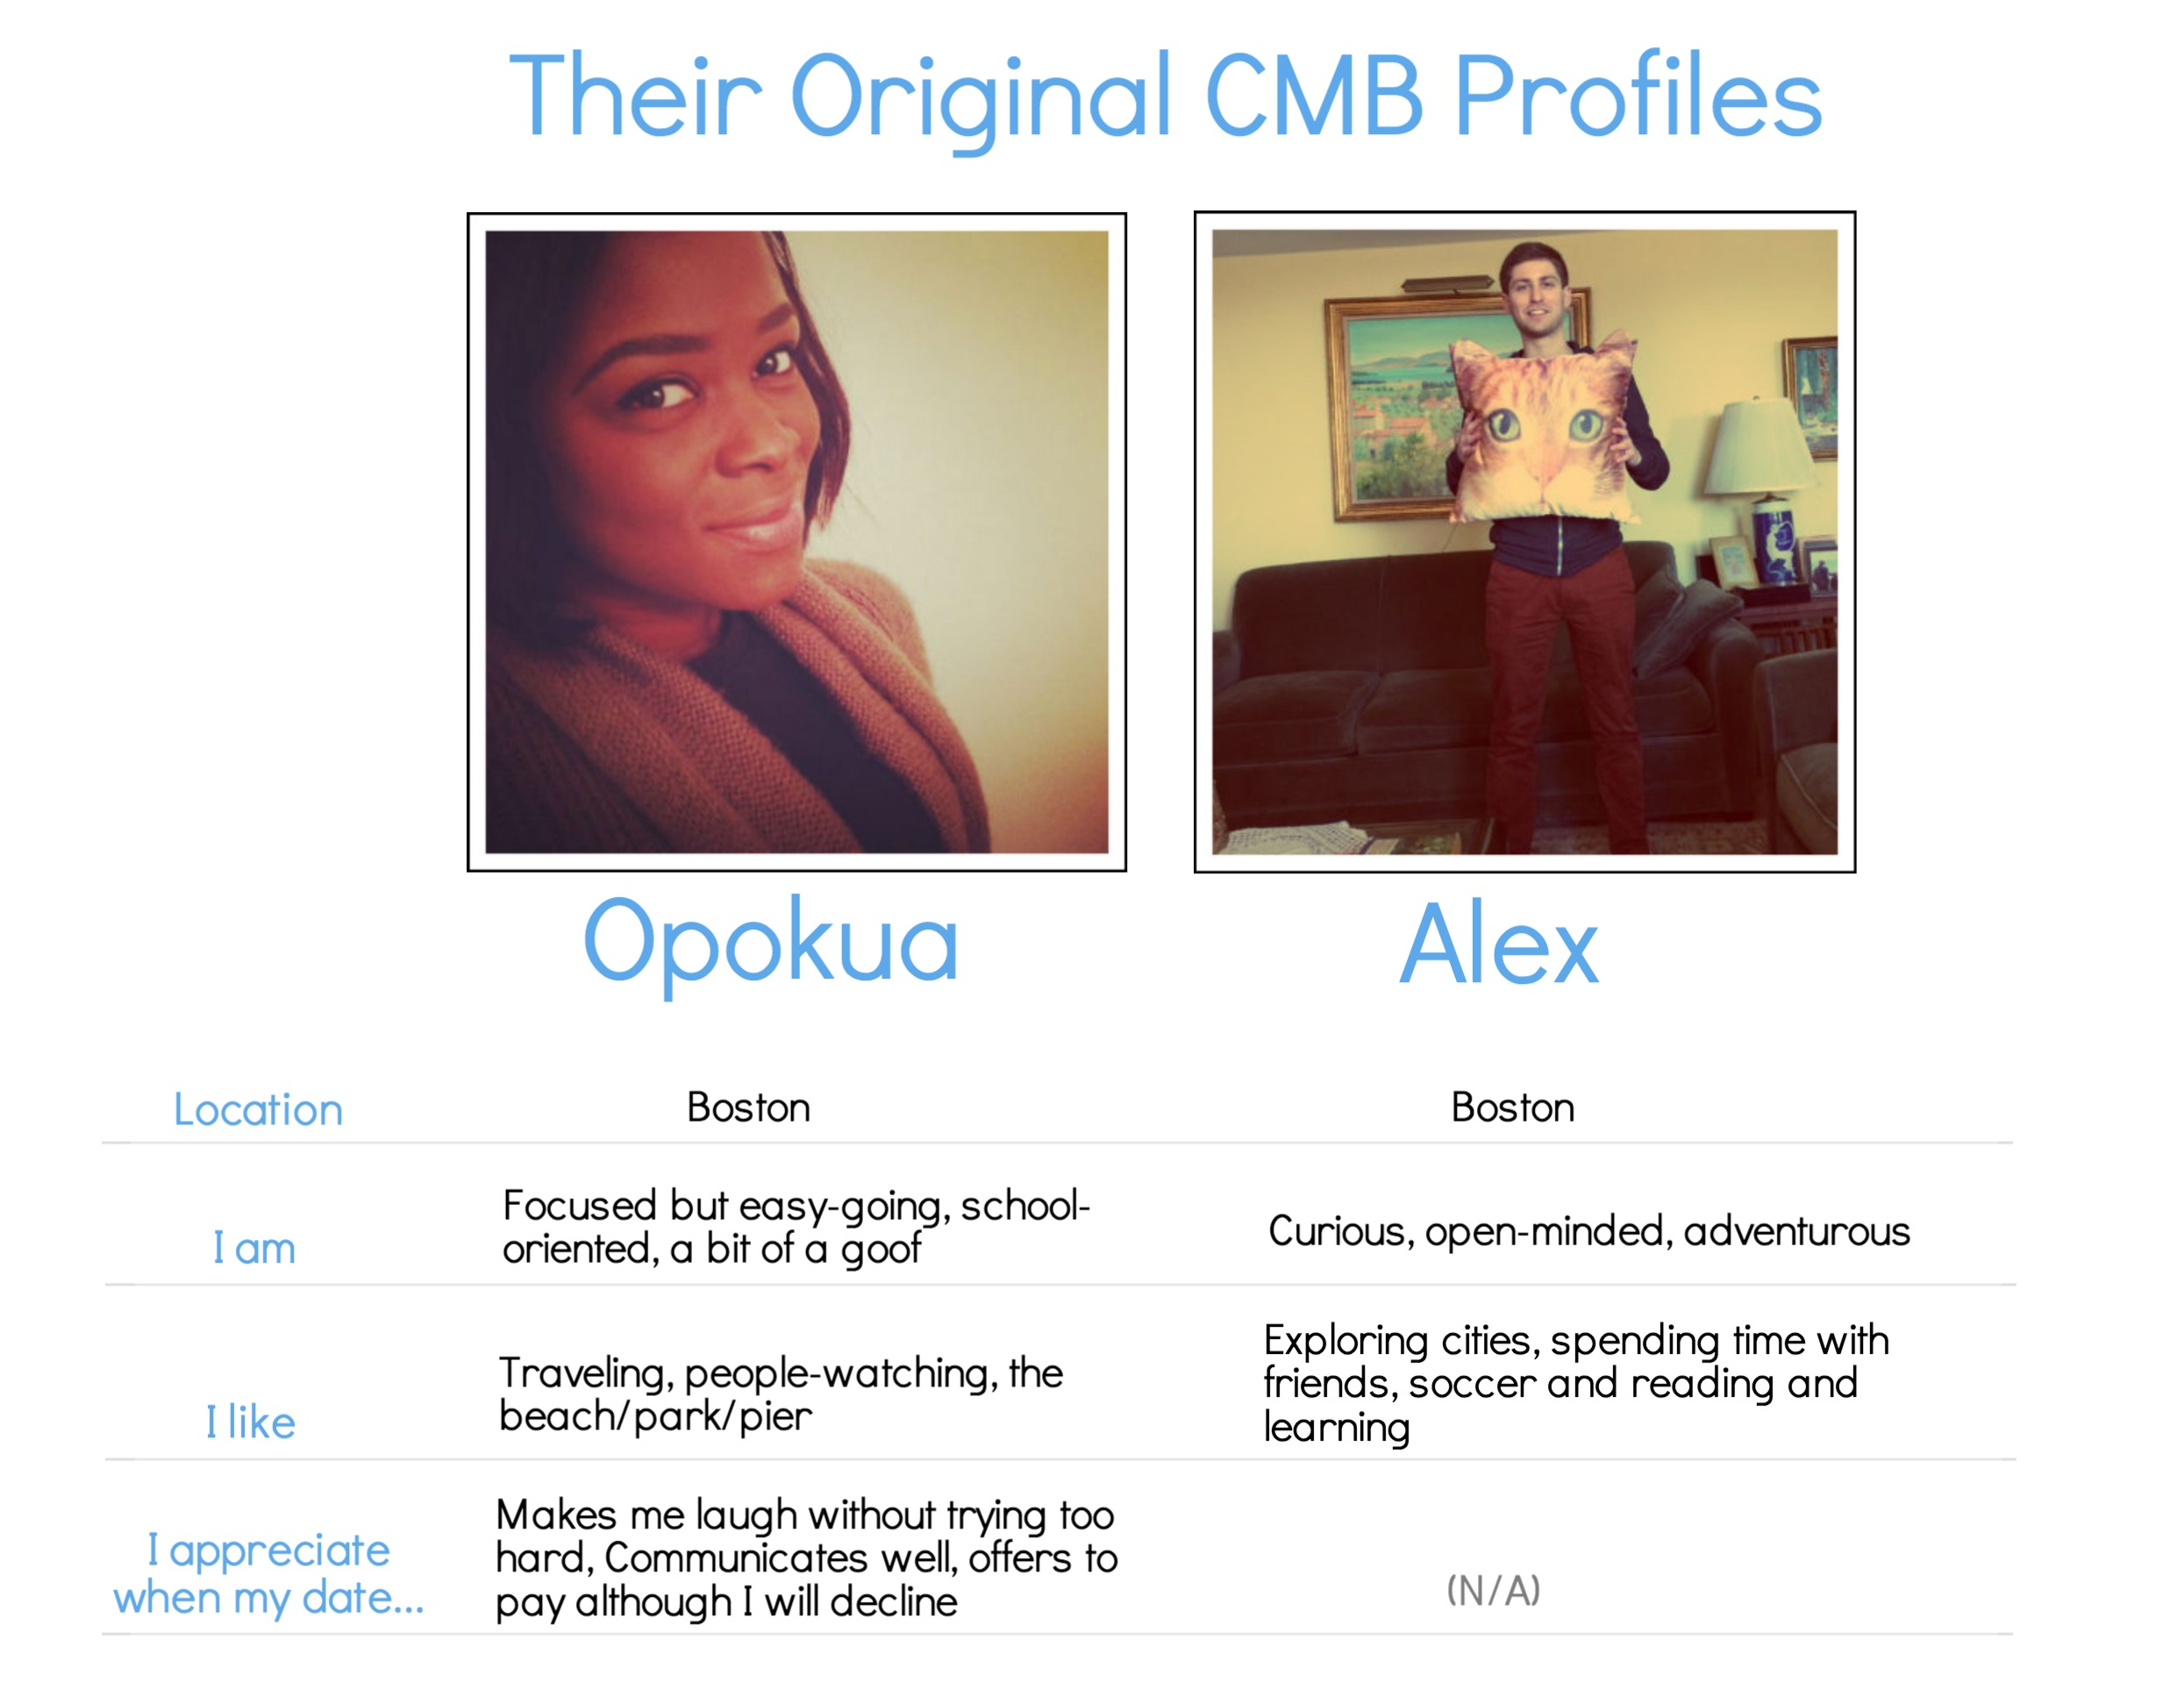 Alex And Opokua's Profiles